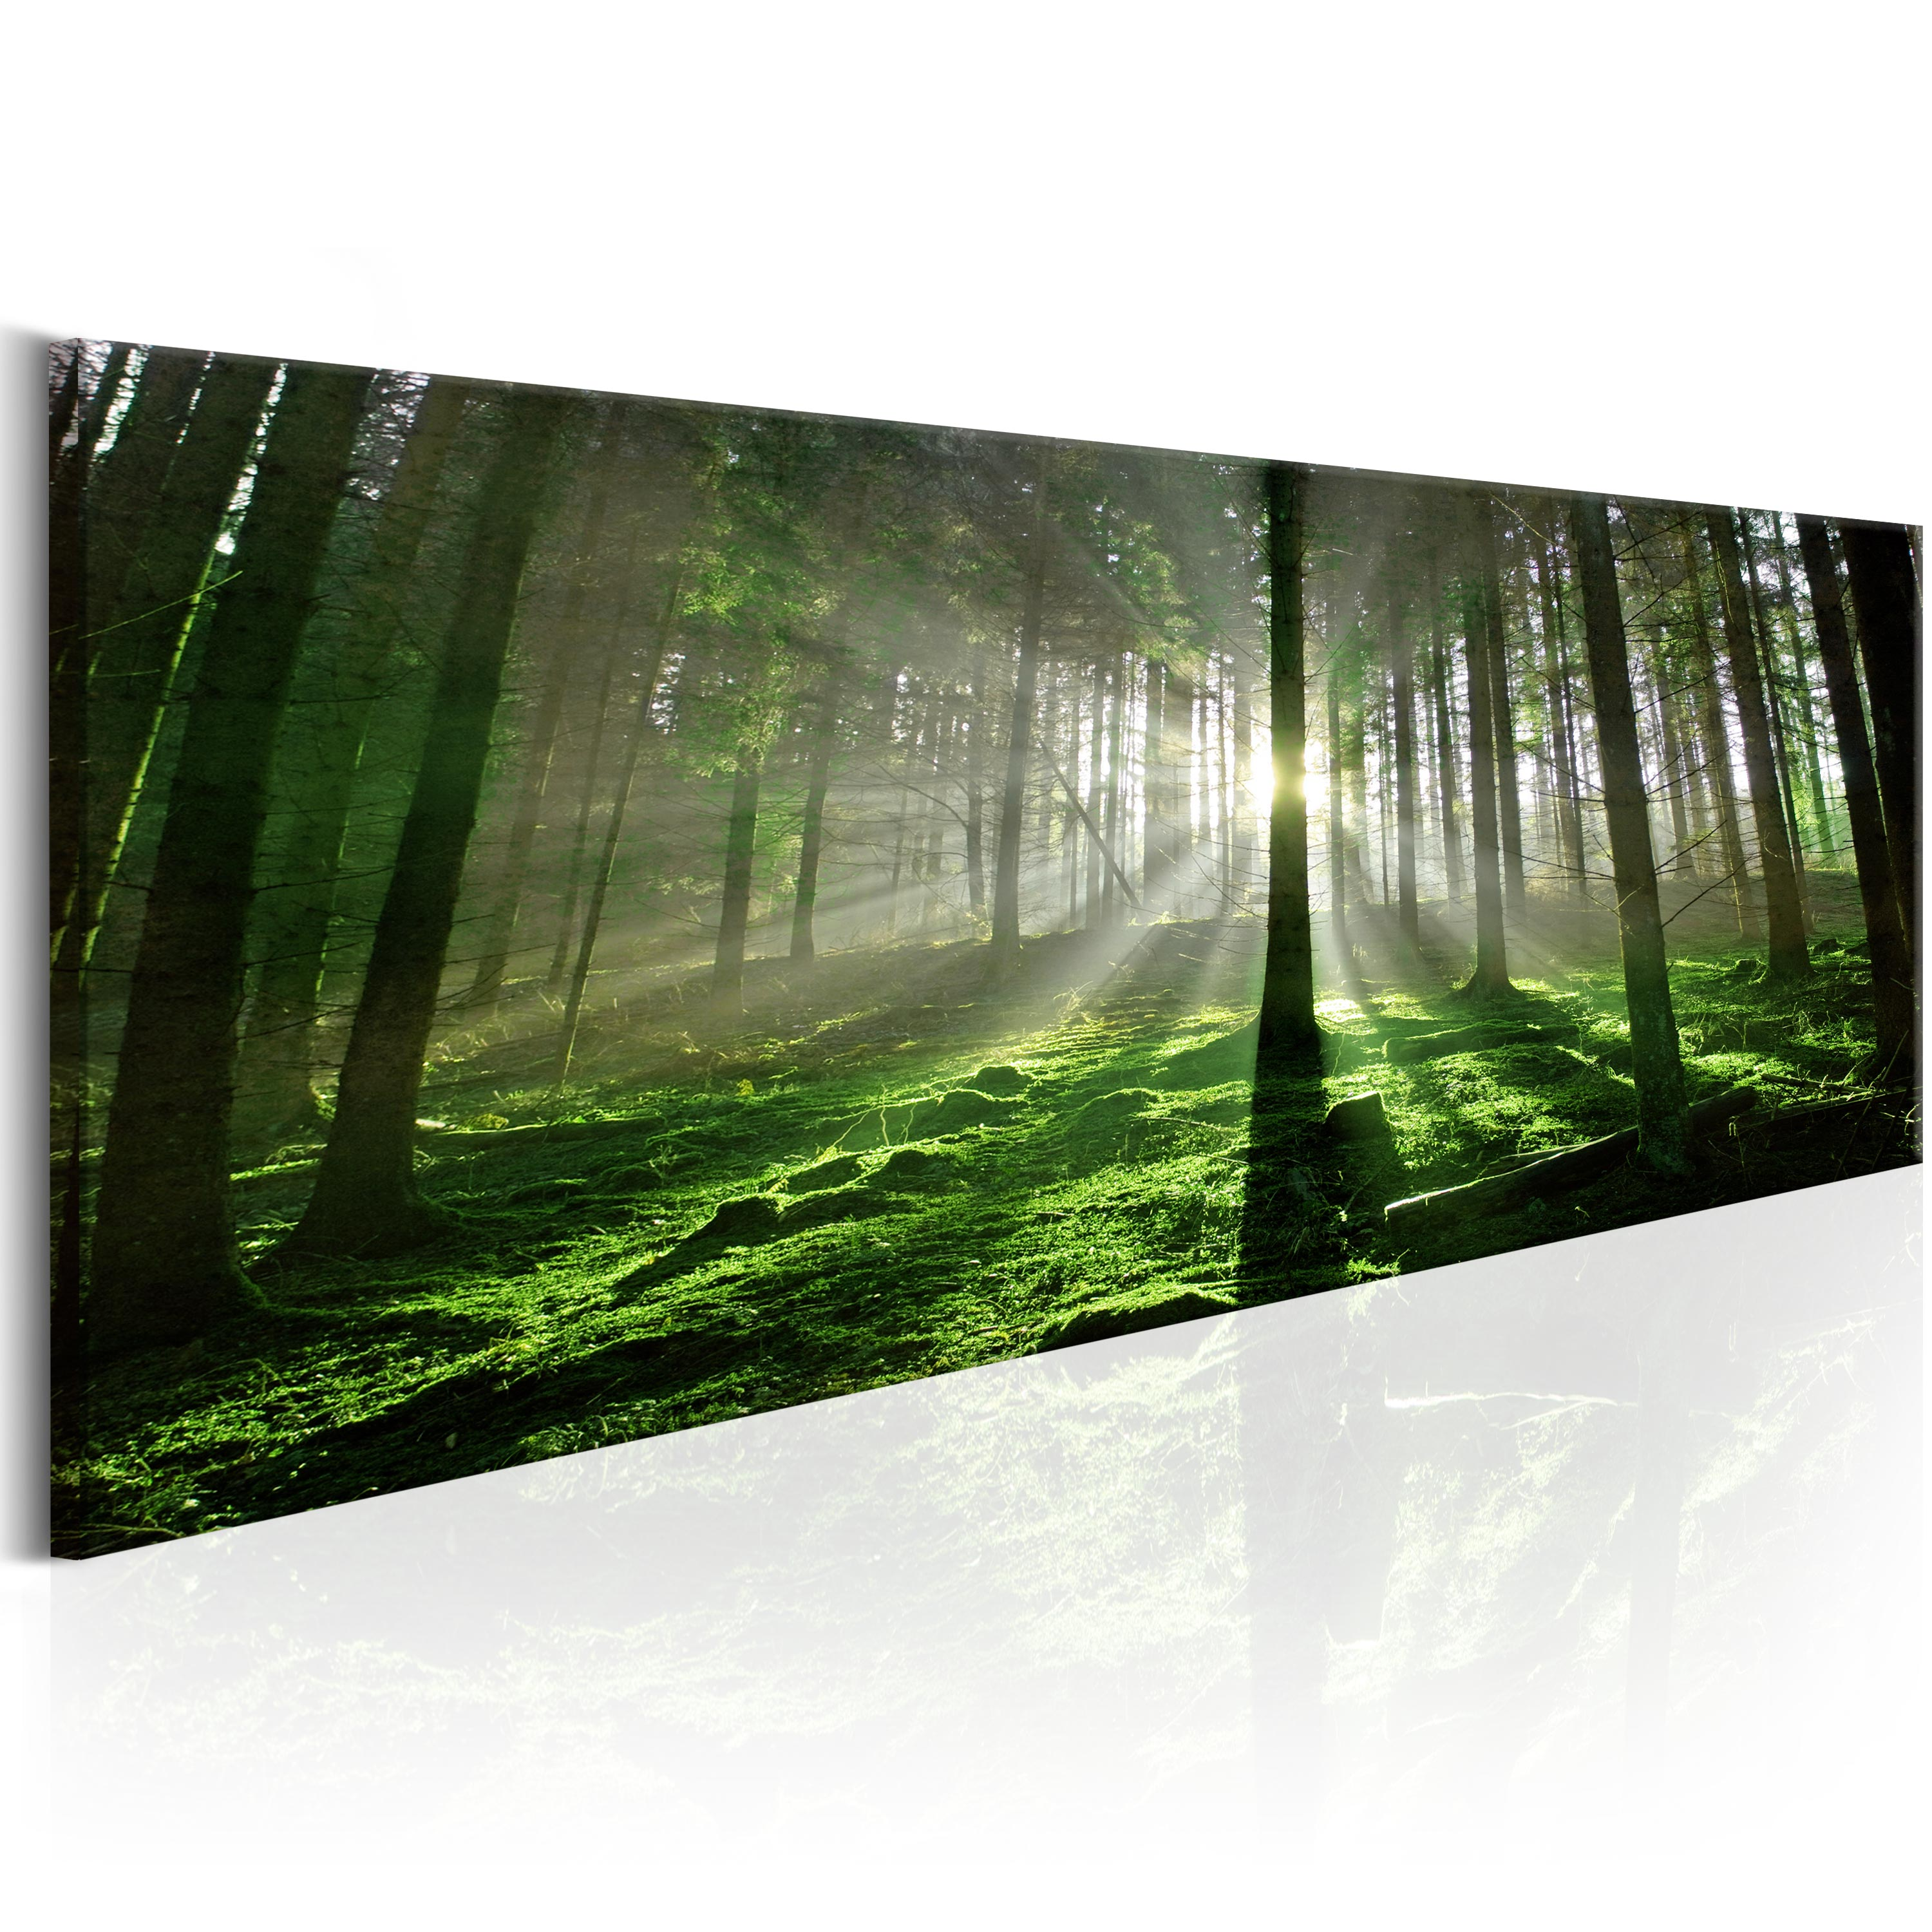 leinwand xxl bilder kunstdruck wandbild wald landschaft natur c b 0261 b a ebay. Black Bedroom Furniture Sets. Home Design Ideas